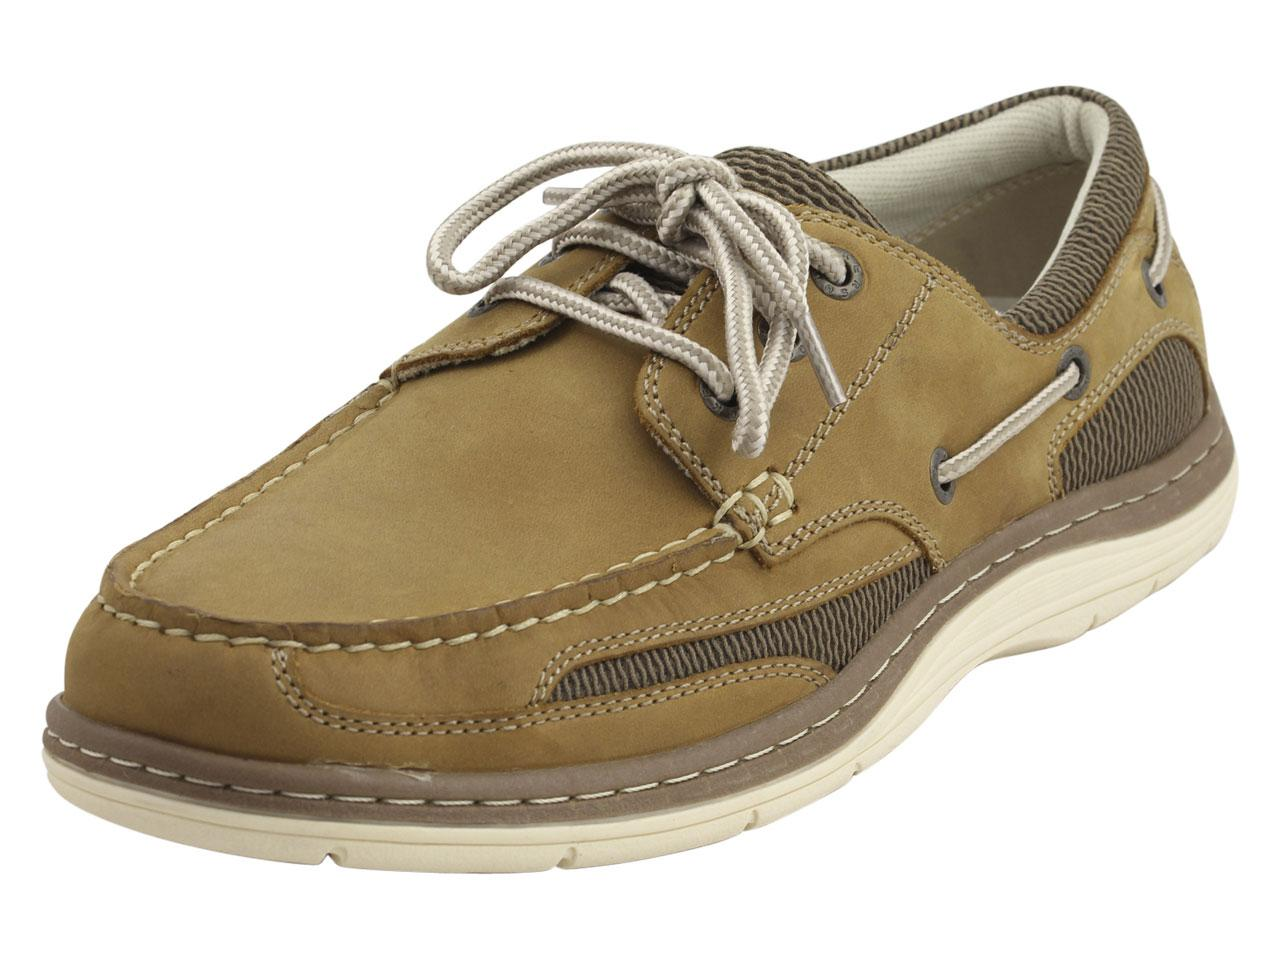 Image of Dockers Men's Lakeport Memory Foam Loafers Boat Shoes - Brown - 9.5 D(M) US